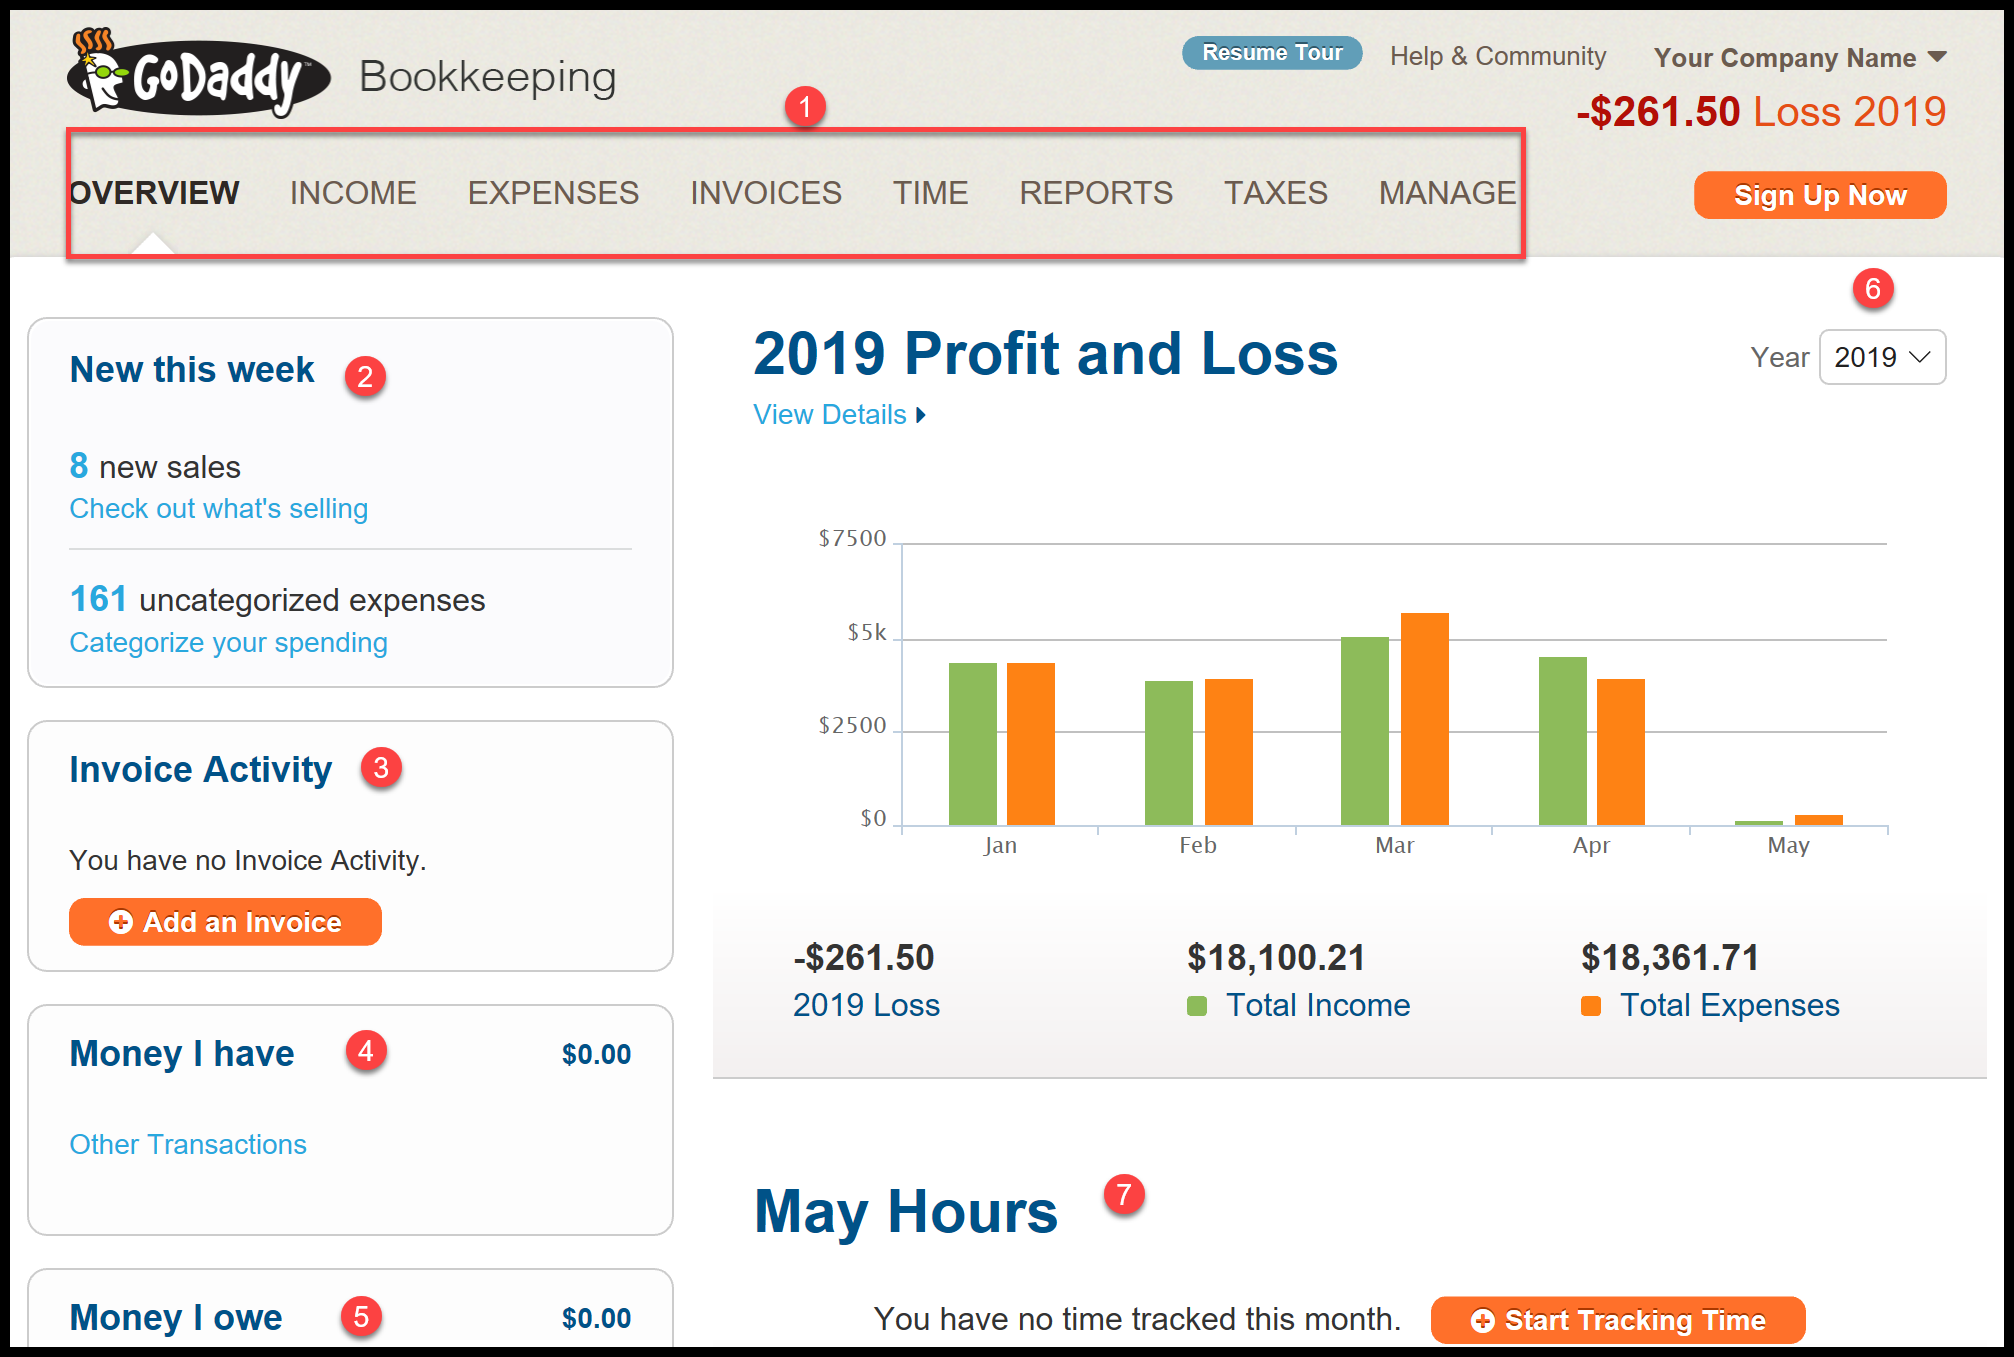 GoDaddy Bookkeeping vs FreshBooks: Prices & Features in 2019